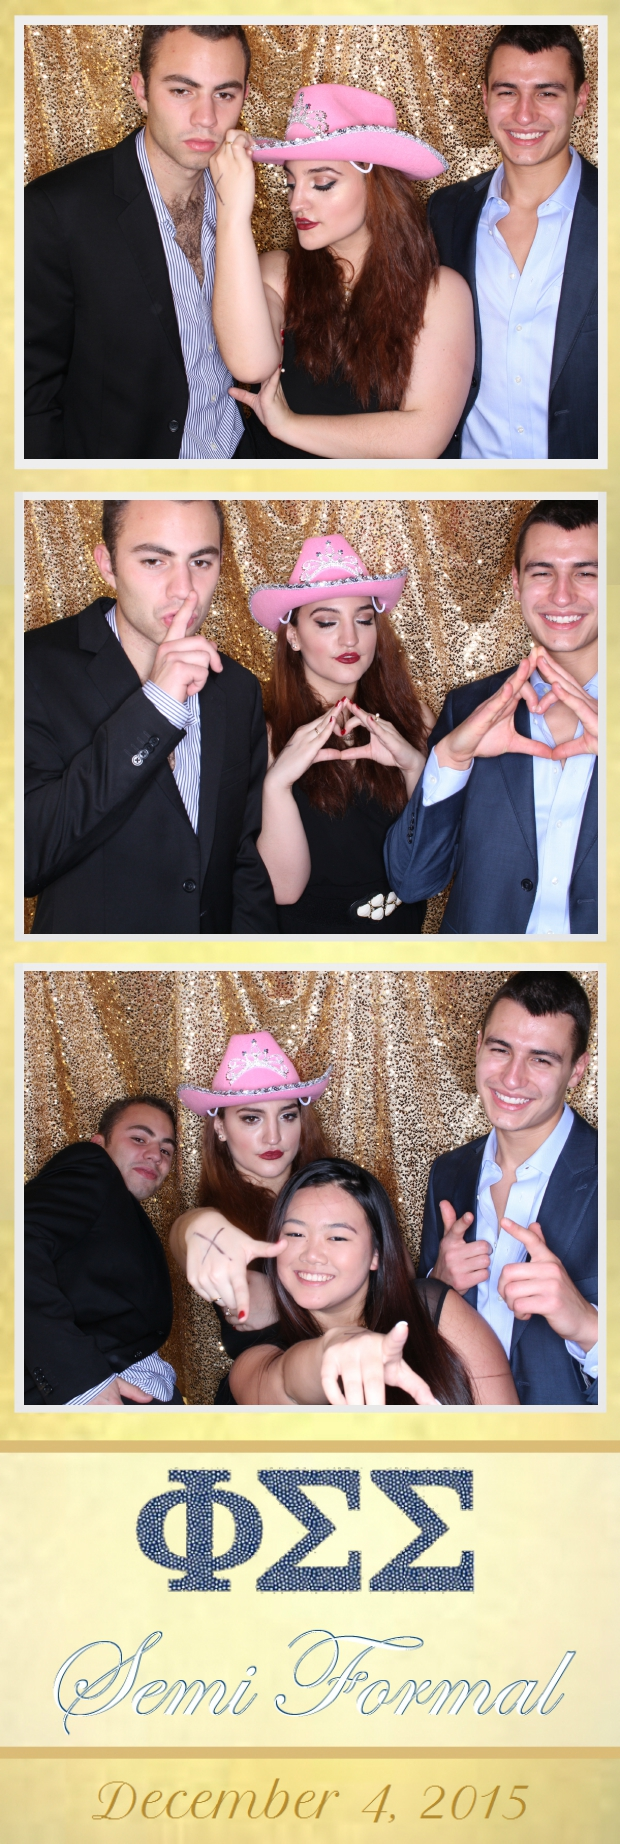 Guest House Events Photo Booth Phi Sigma Sigma Semi Formal (67).jpg